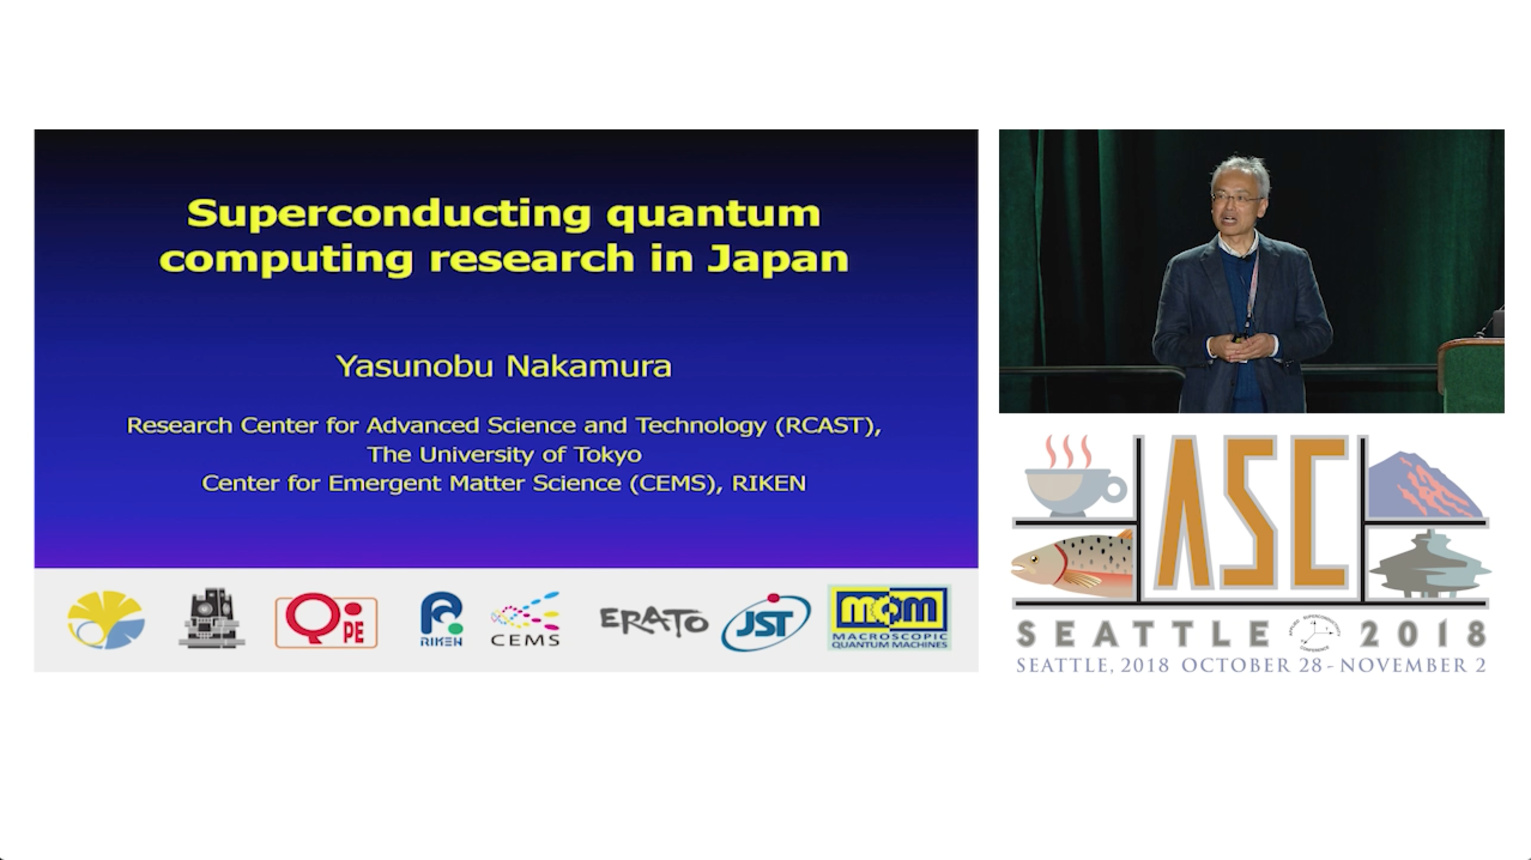 Superconducting quantum computing research in Japan - Applied Superconductivity Conference 2018